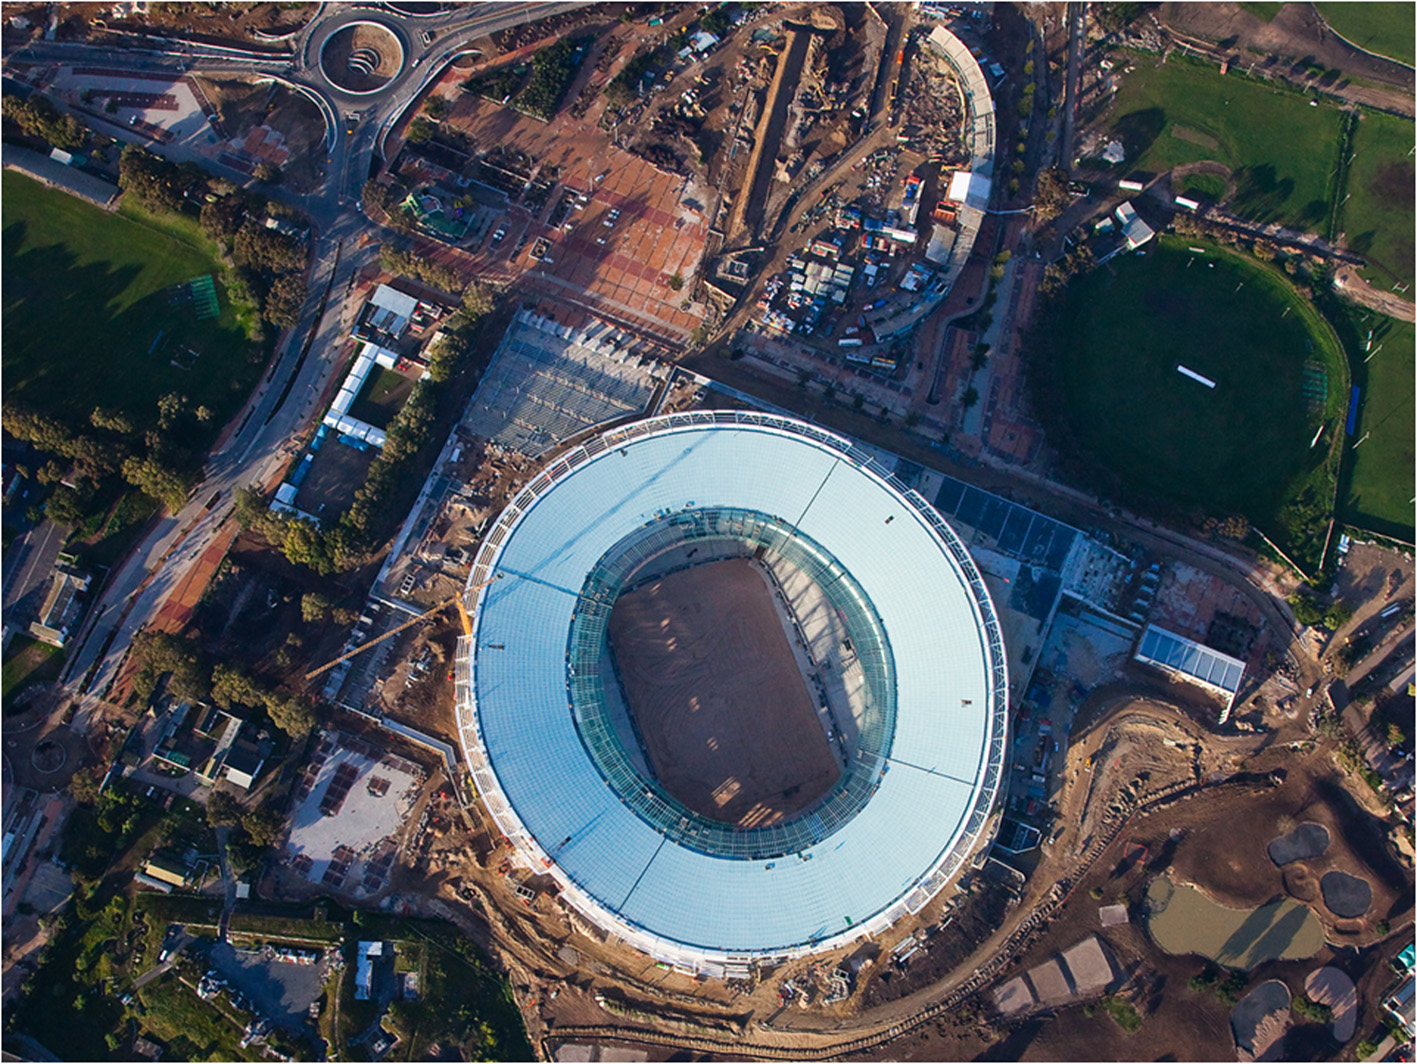 Civil Designer and AllyCAD were used extensively by large engineering consultancies involved in upgrading South Africa for the 2010 World Cup